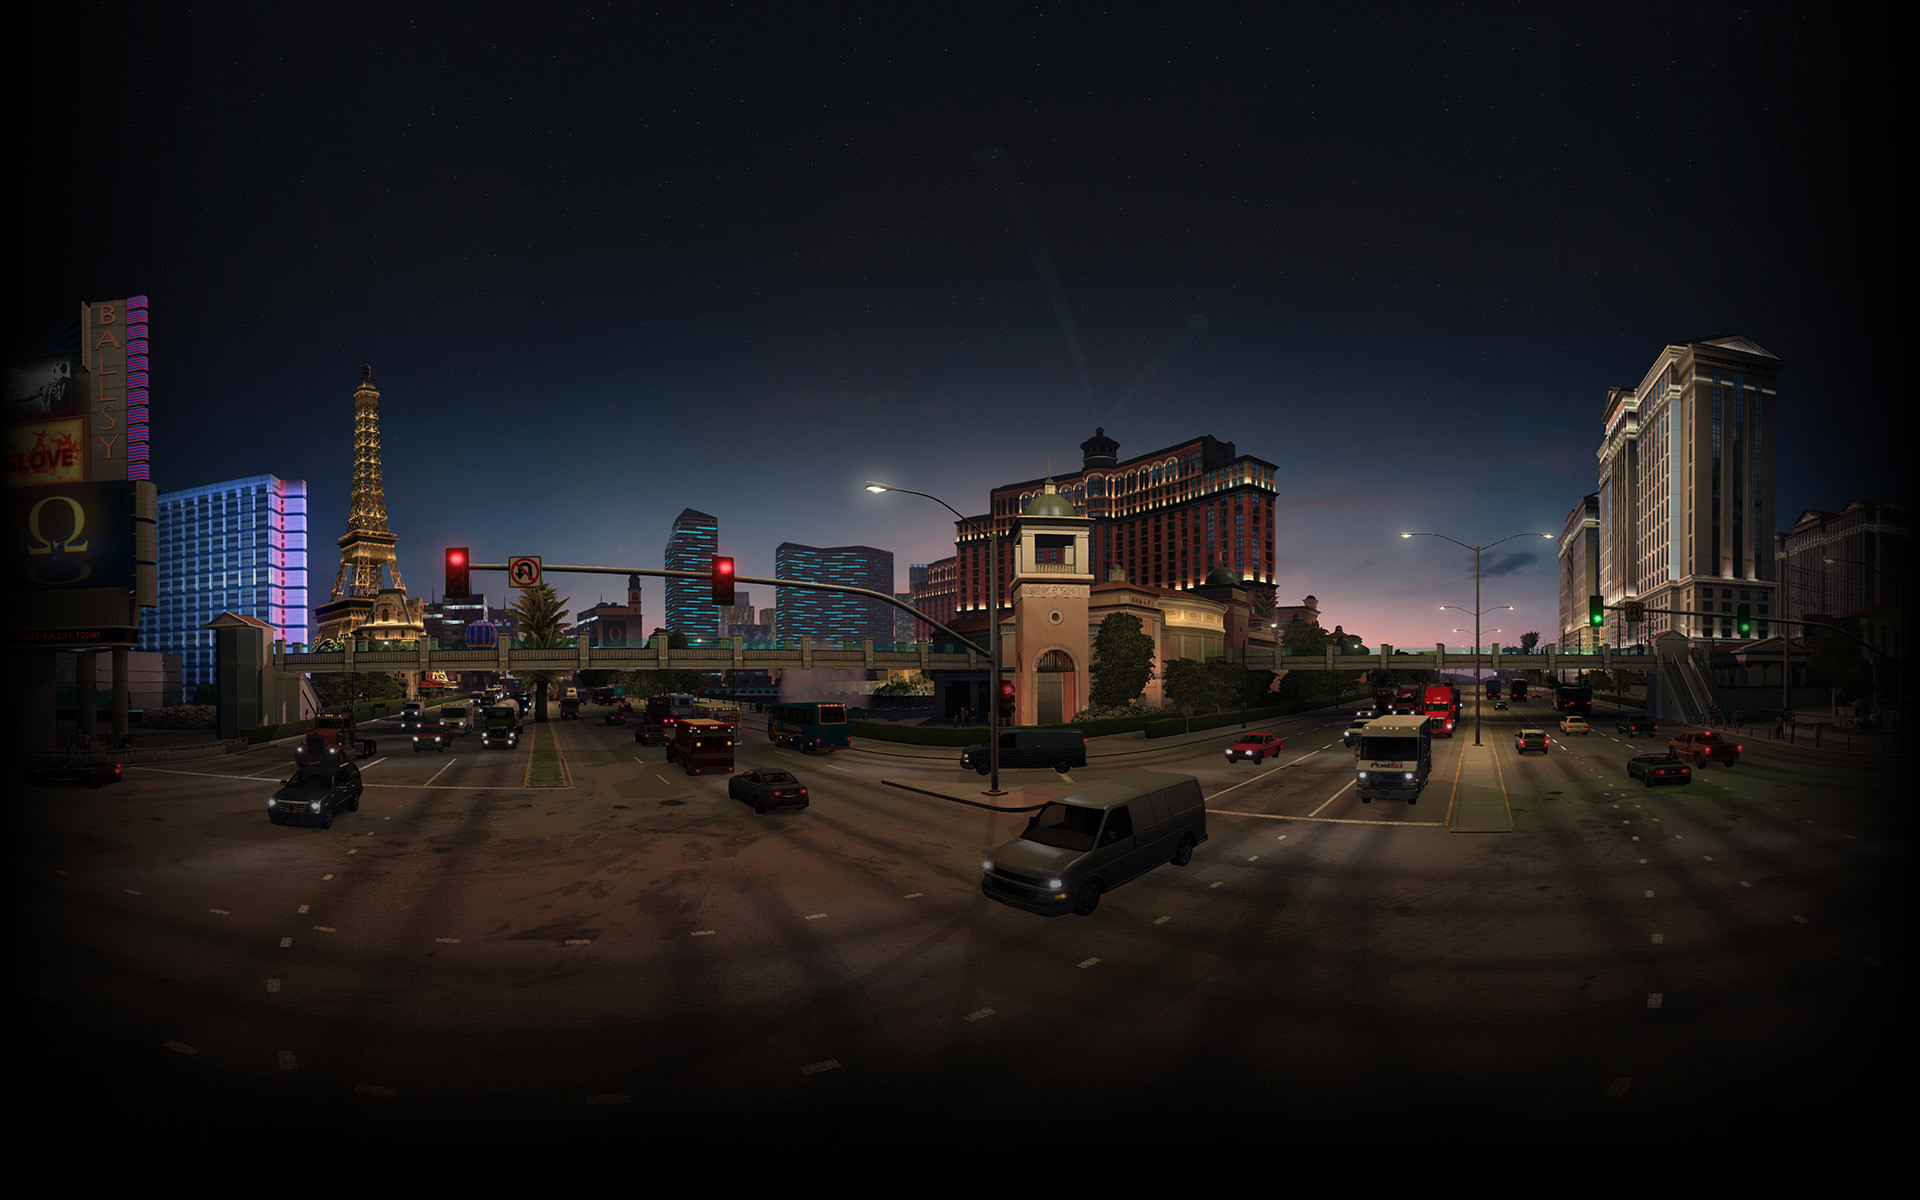 1920x1200 Image - American Truck Simulator Background Las Vegas.jpg | Steam Trading  Cards Wiki | FANDOM powered by Wikia